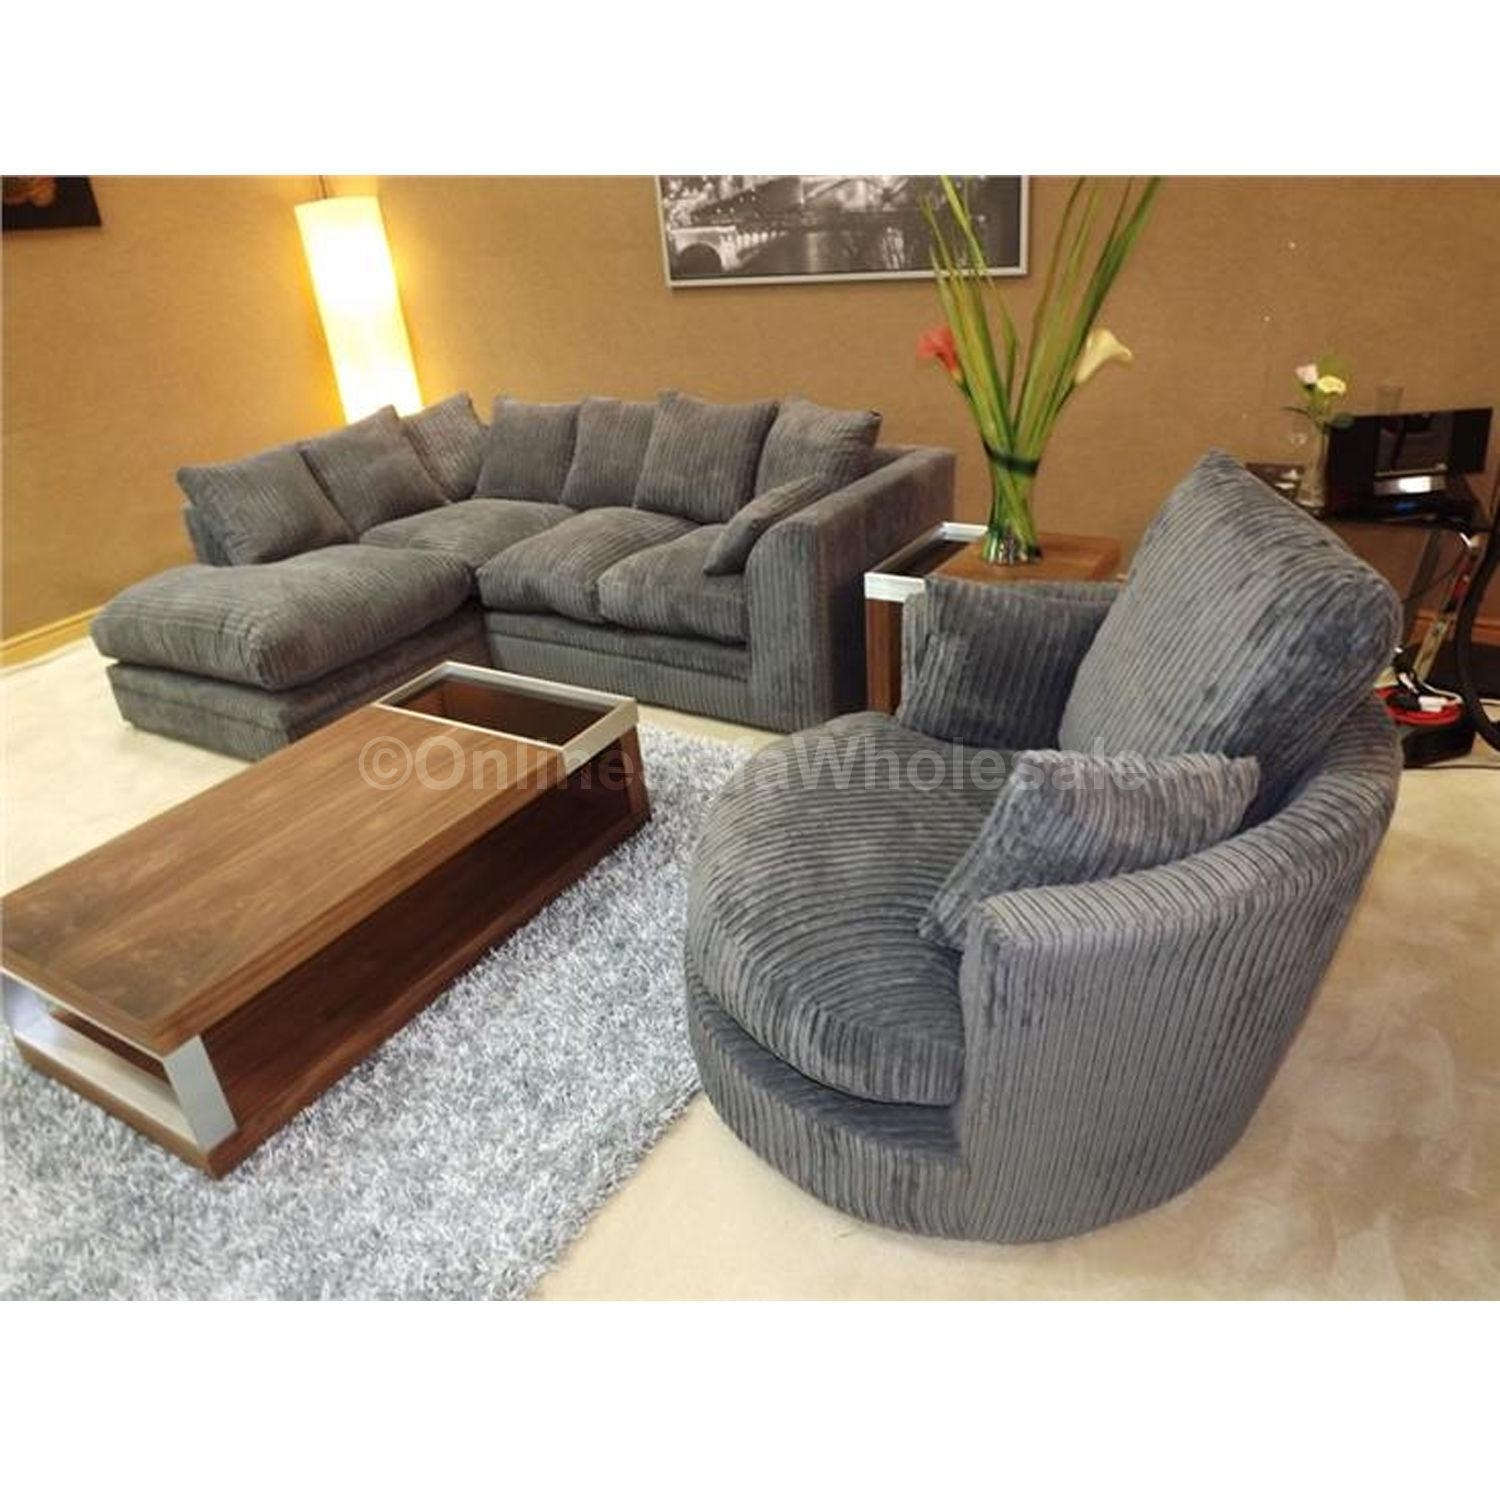 Oversized Sofa Chair Round Swivel Sofa Chair Oversized Swivel Chairs Foter